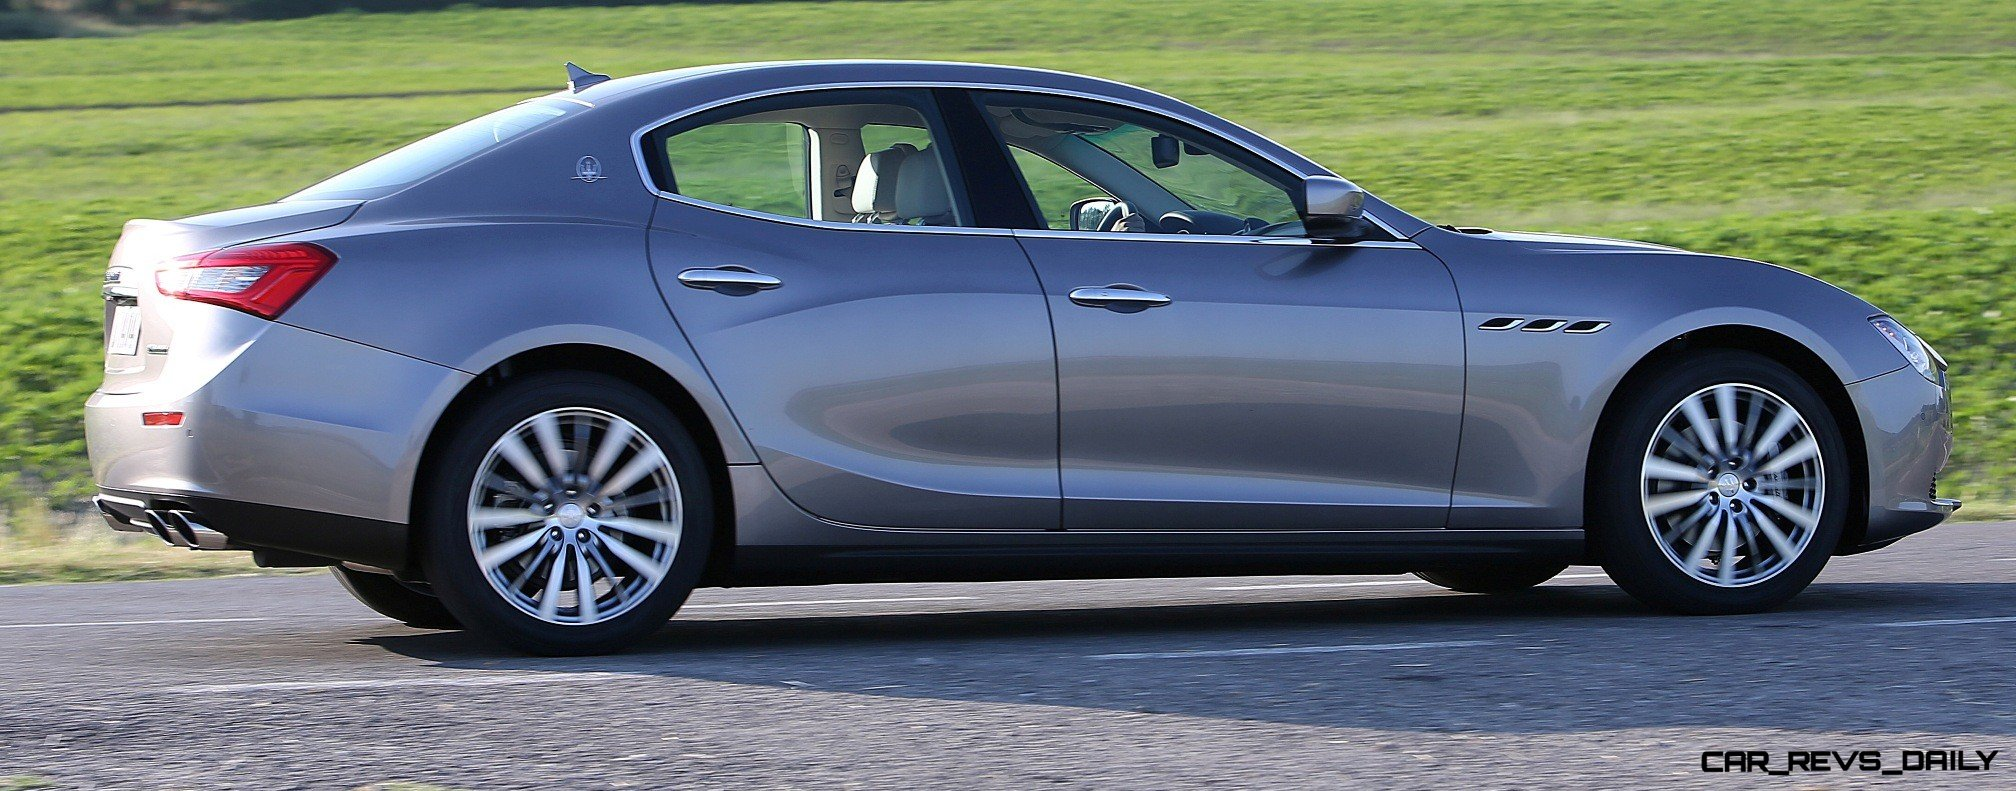 Update1 70 Real Life Photos 2014 Maserati Ghibli S Q4 Debuts All New Configurator